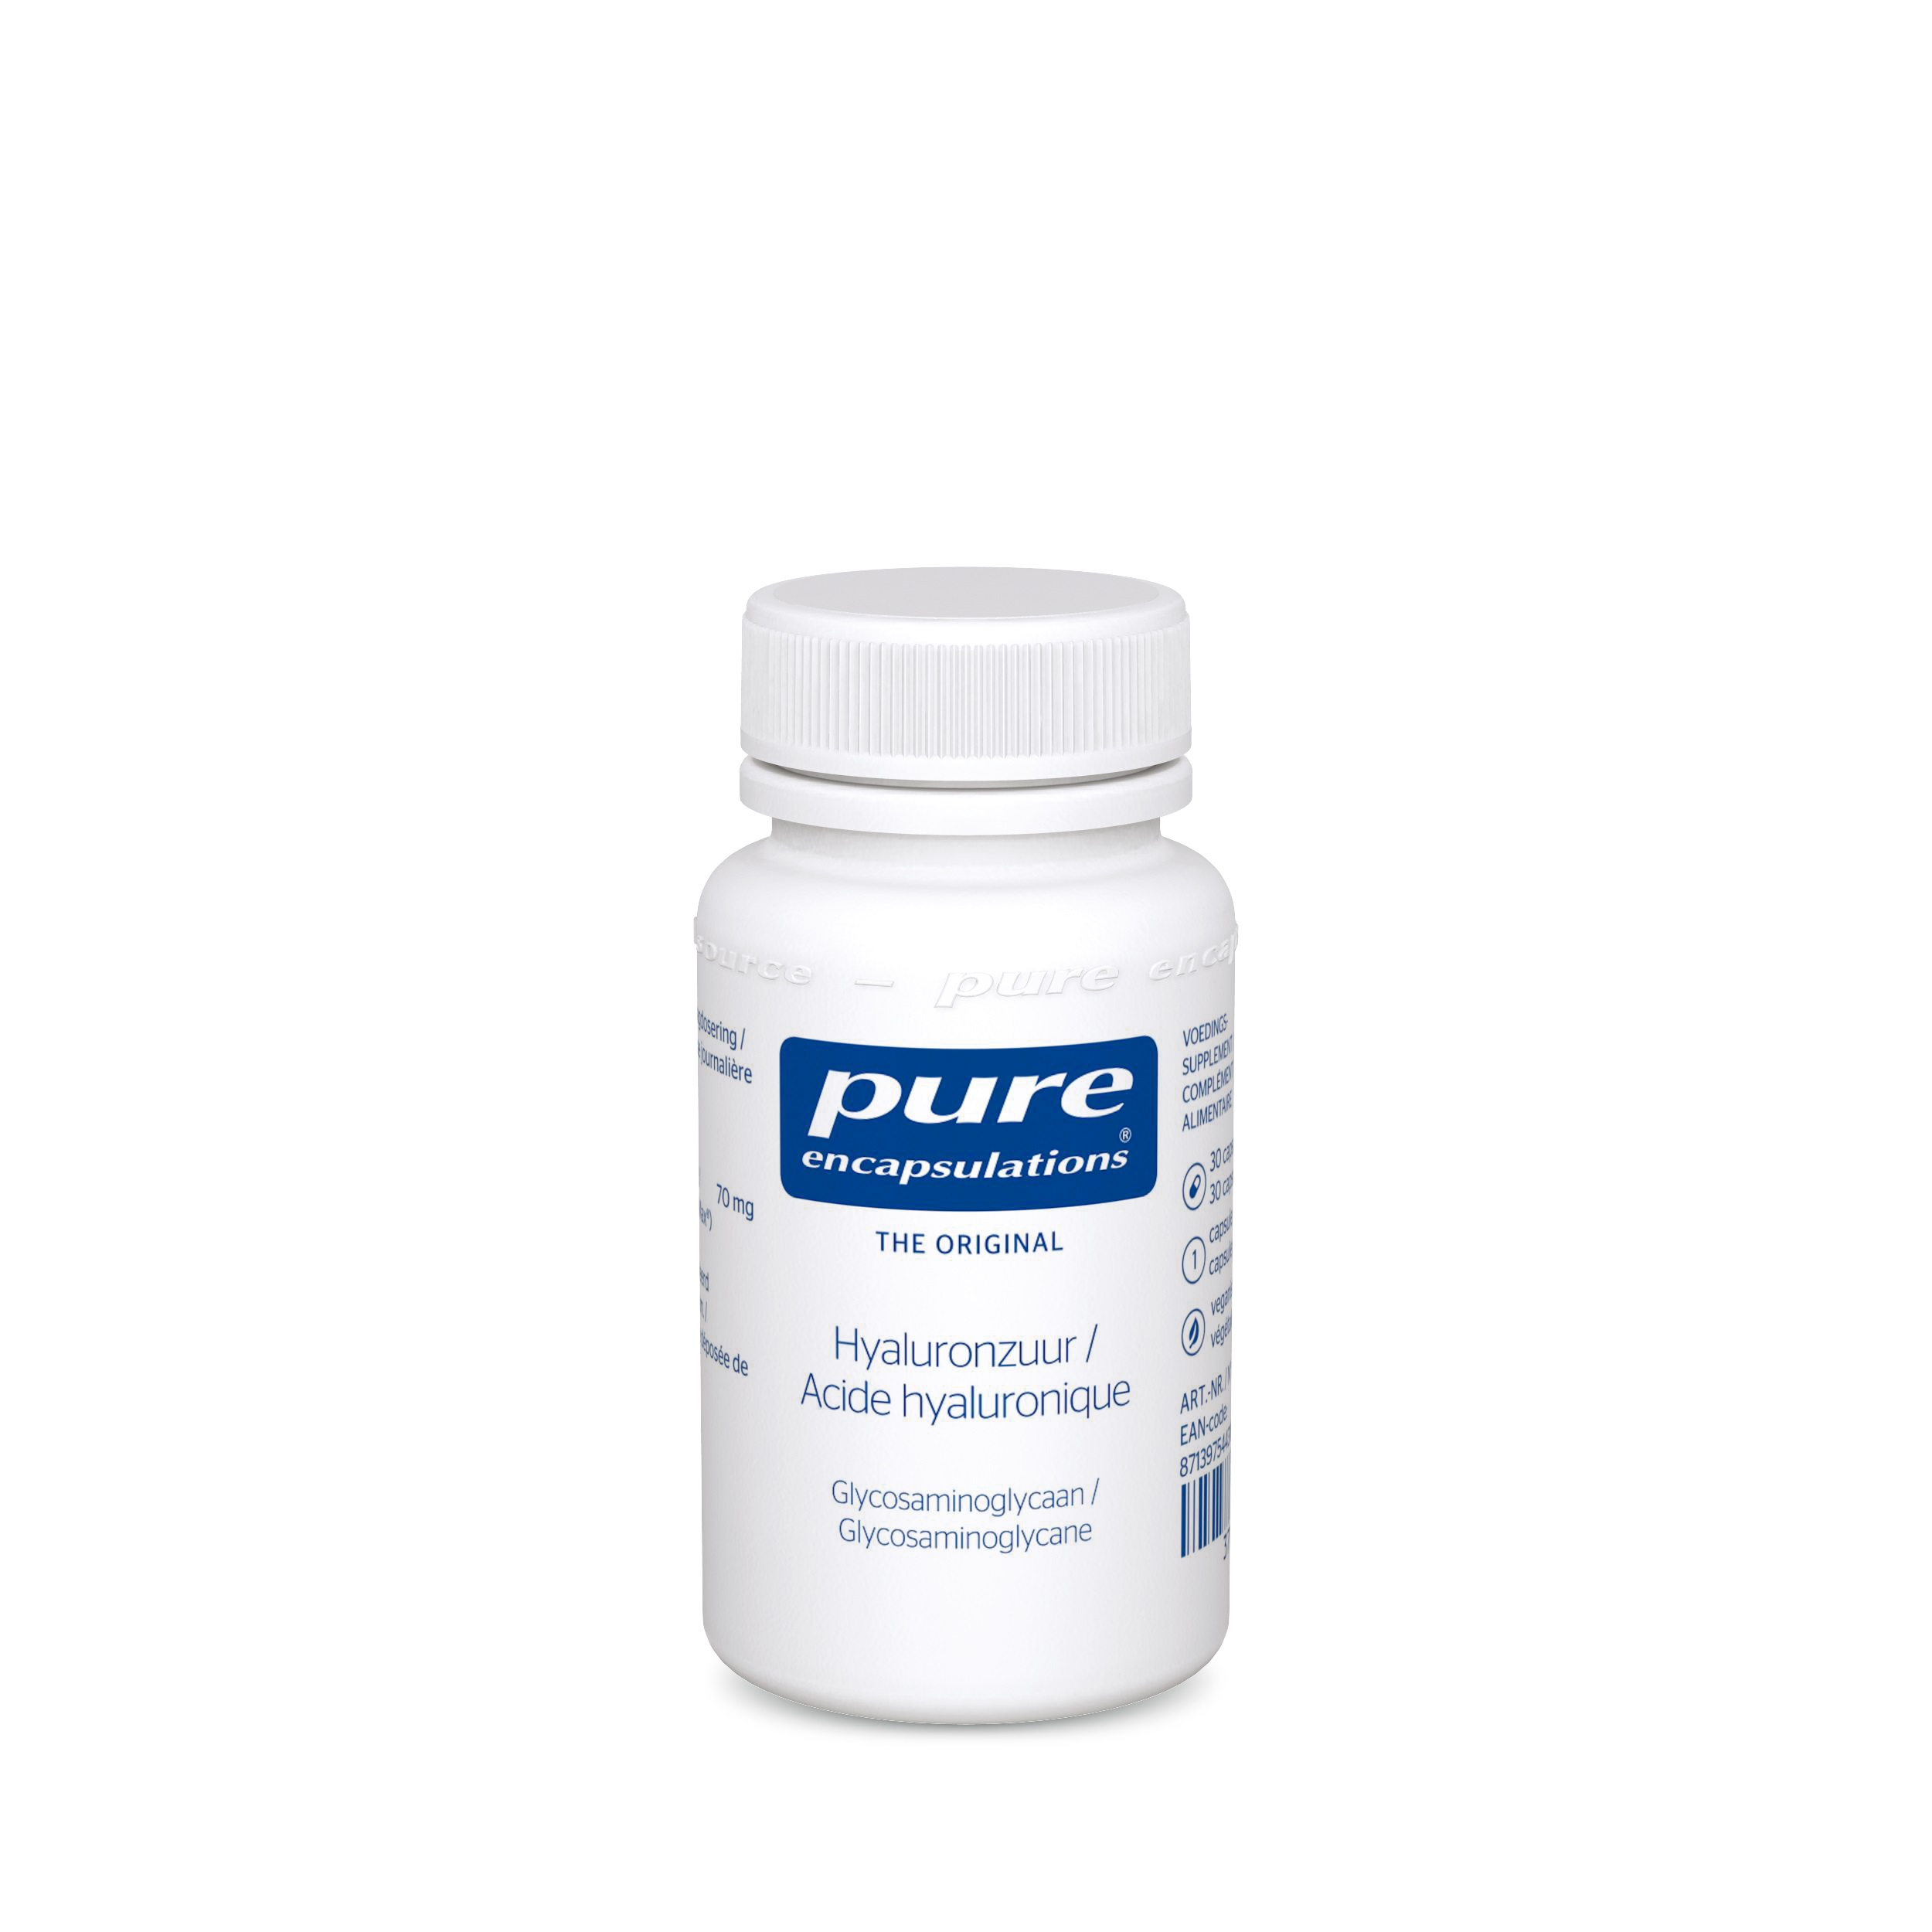 Image of Pure Encapsulations acide hyaluronique